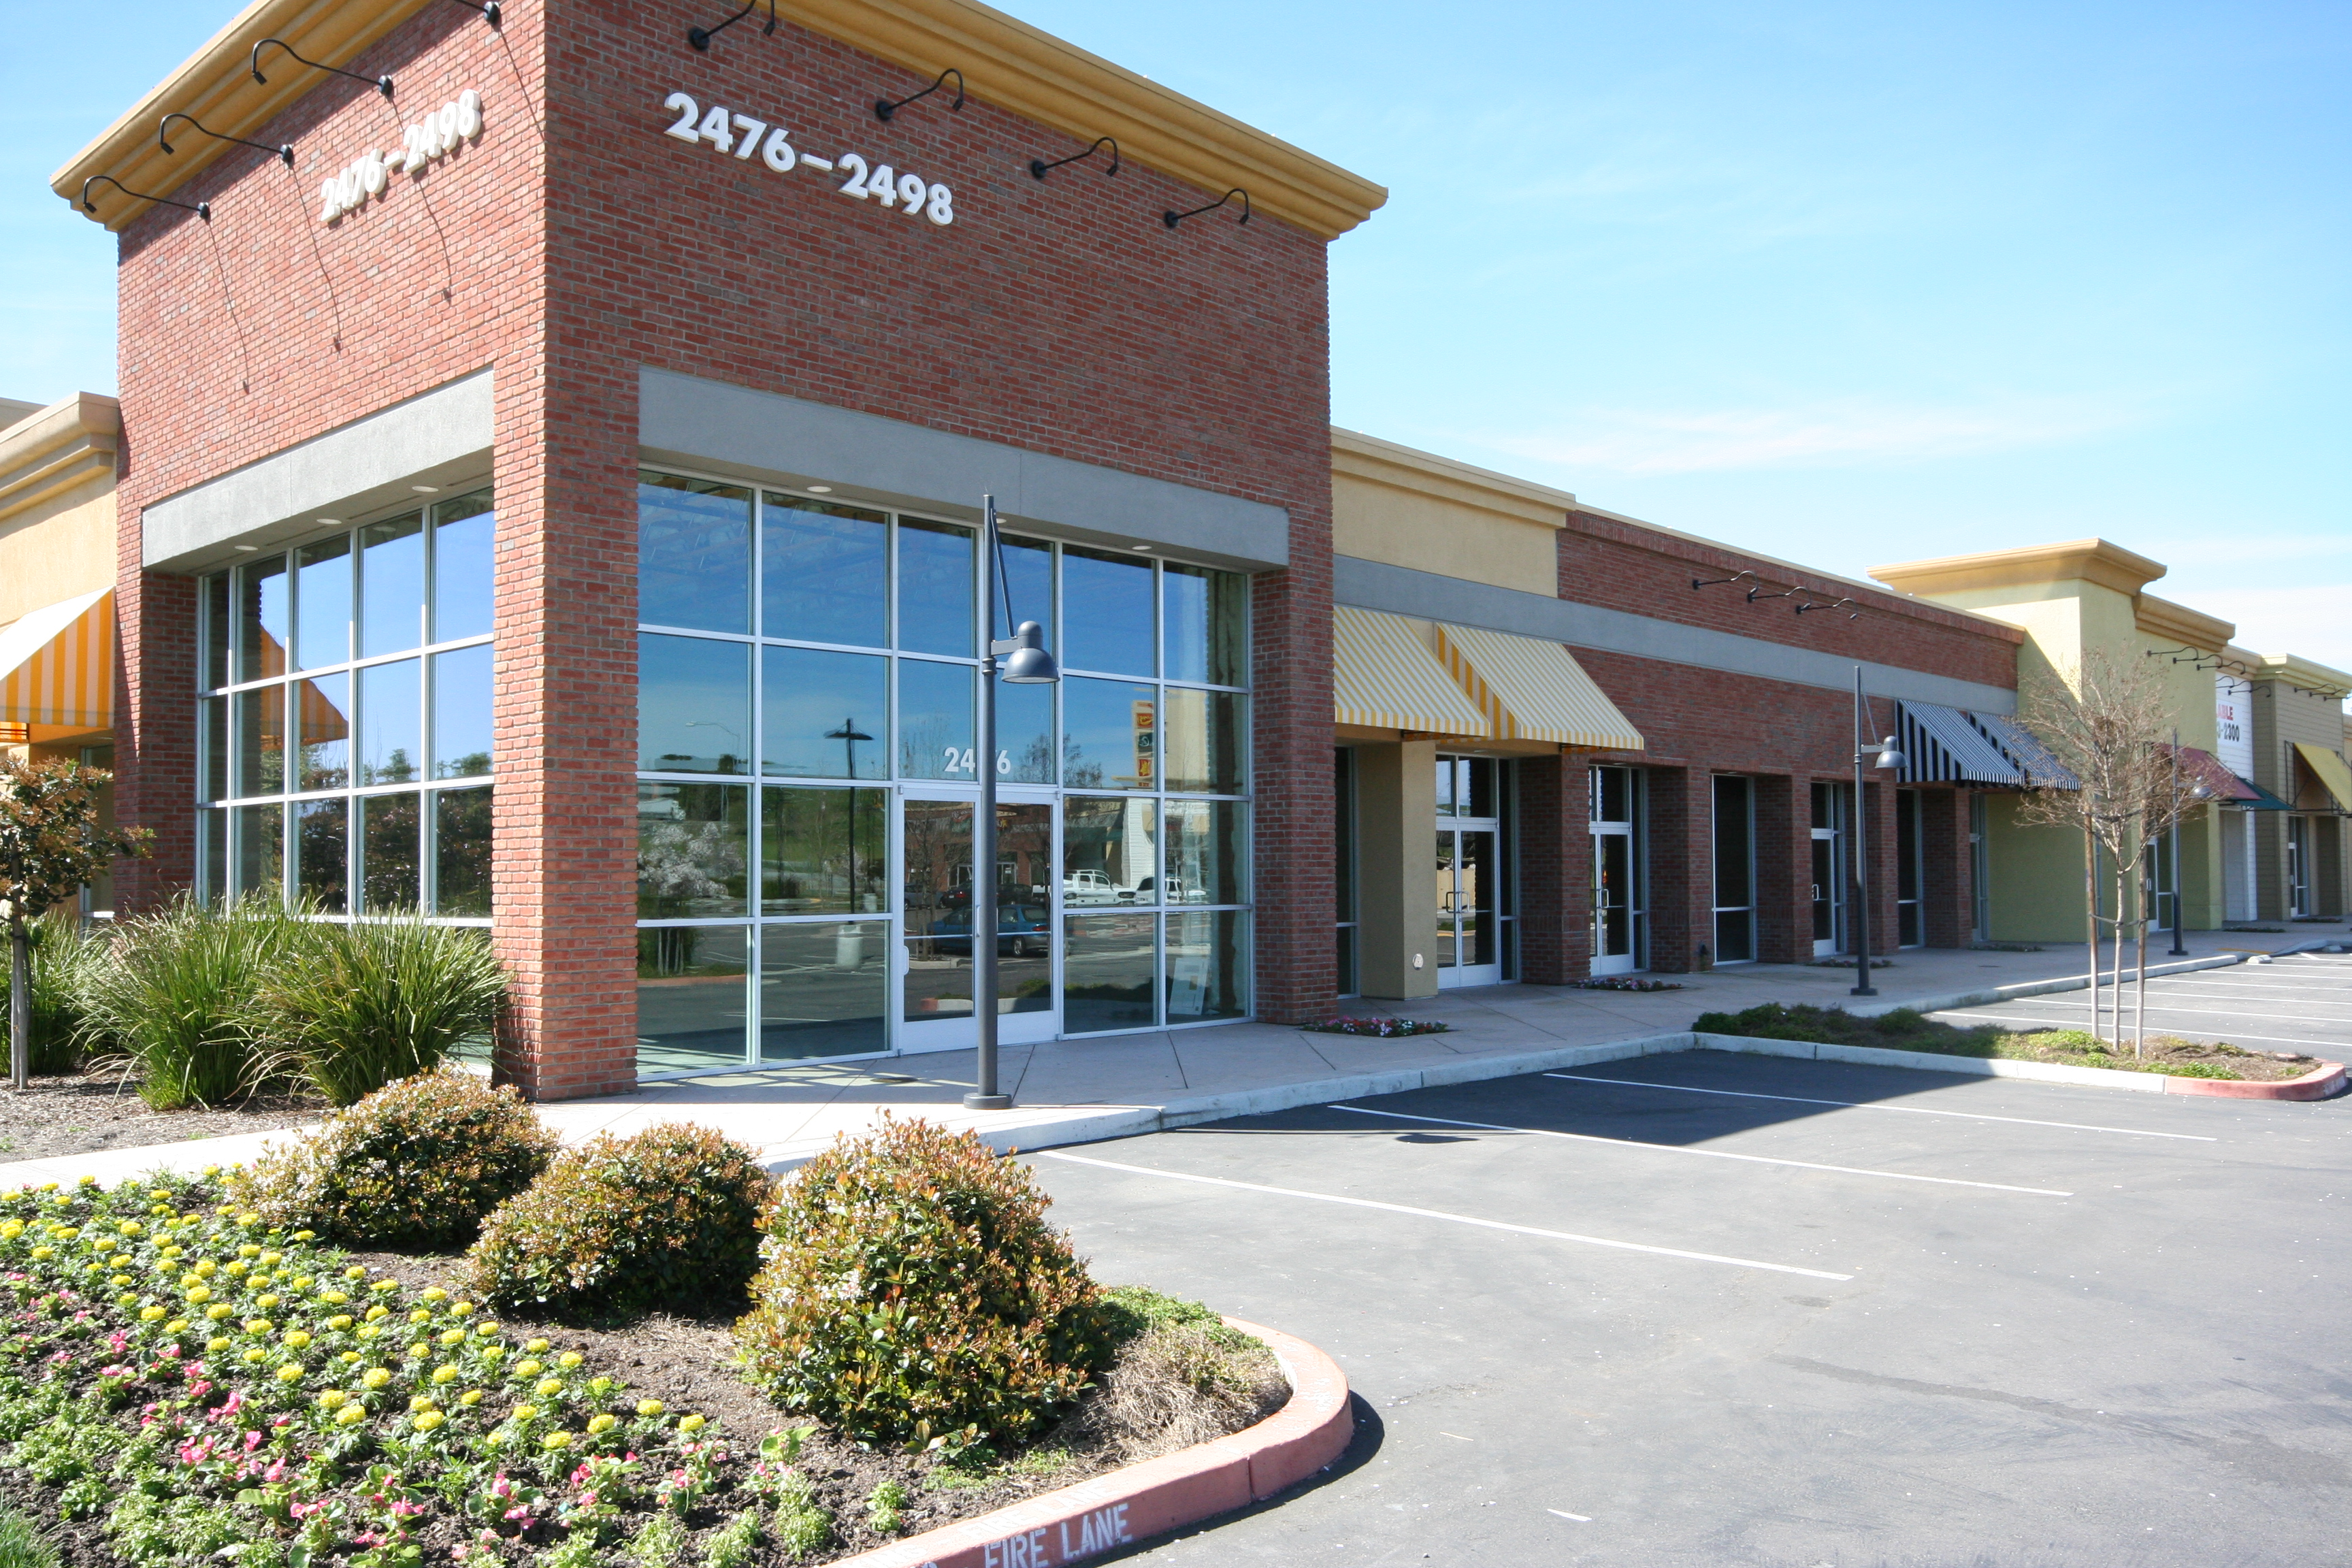 Kassabian Motors Plans to Relocate to Livermore | The Storefront